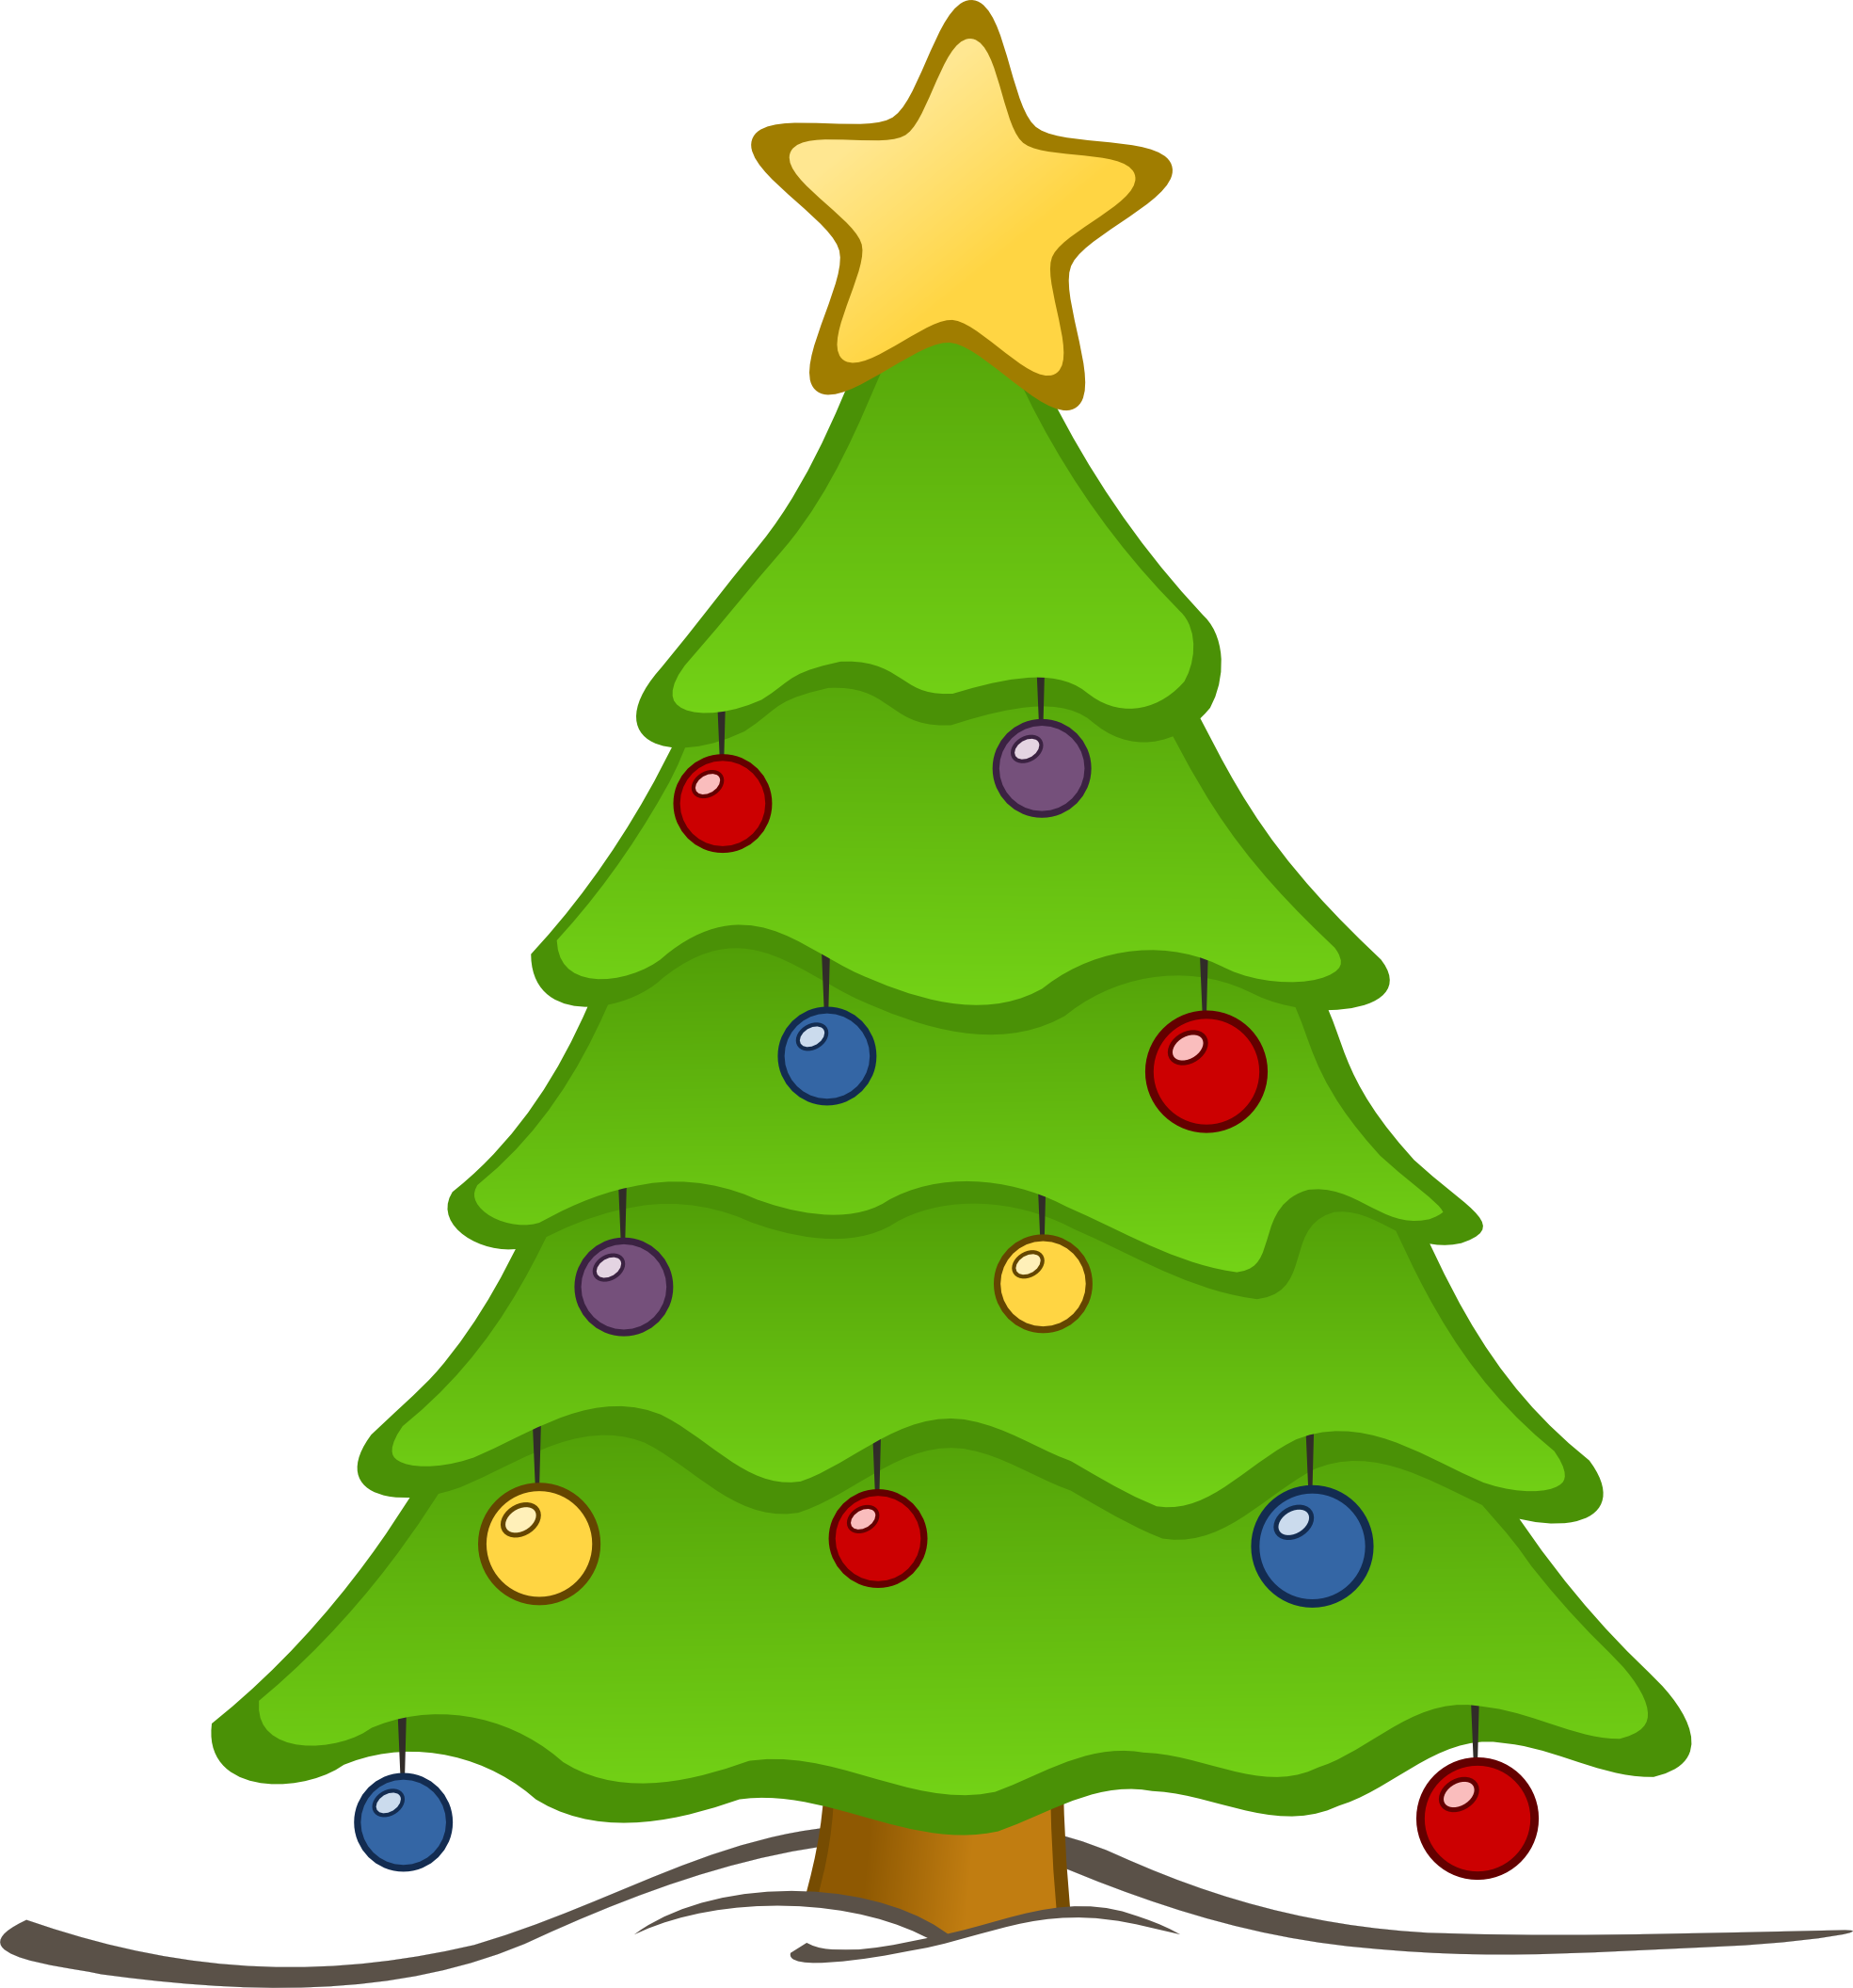 Tree arsenal clipart. Vector embellishment christmas graphic free